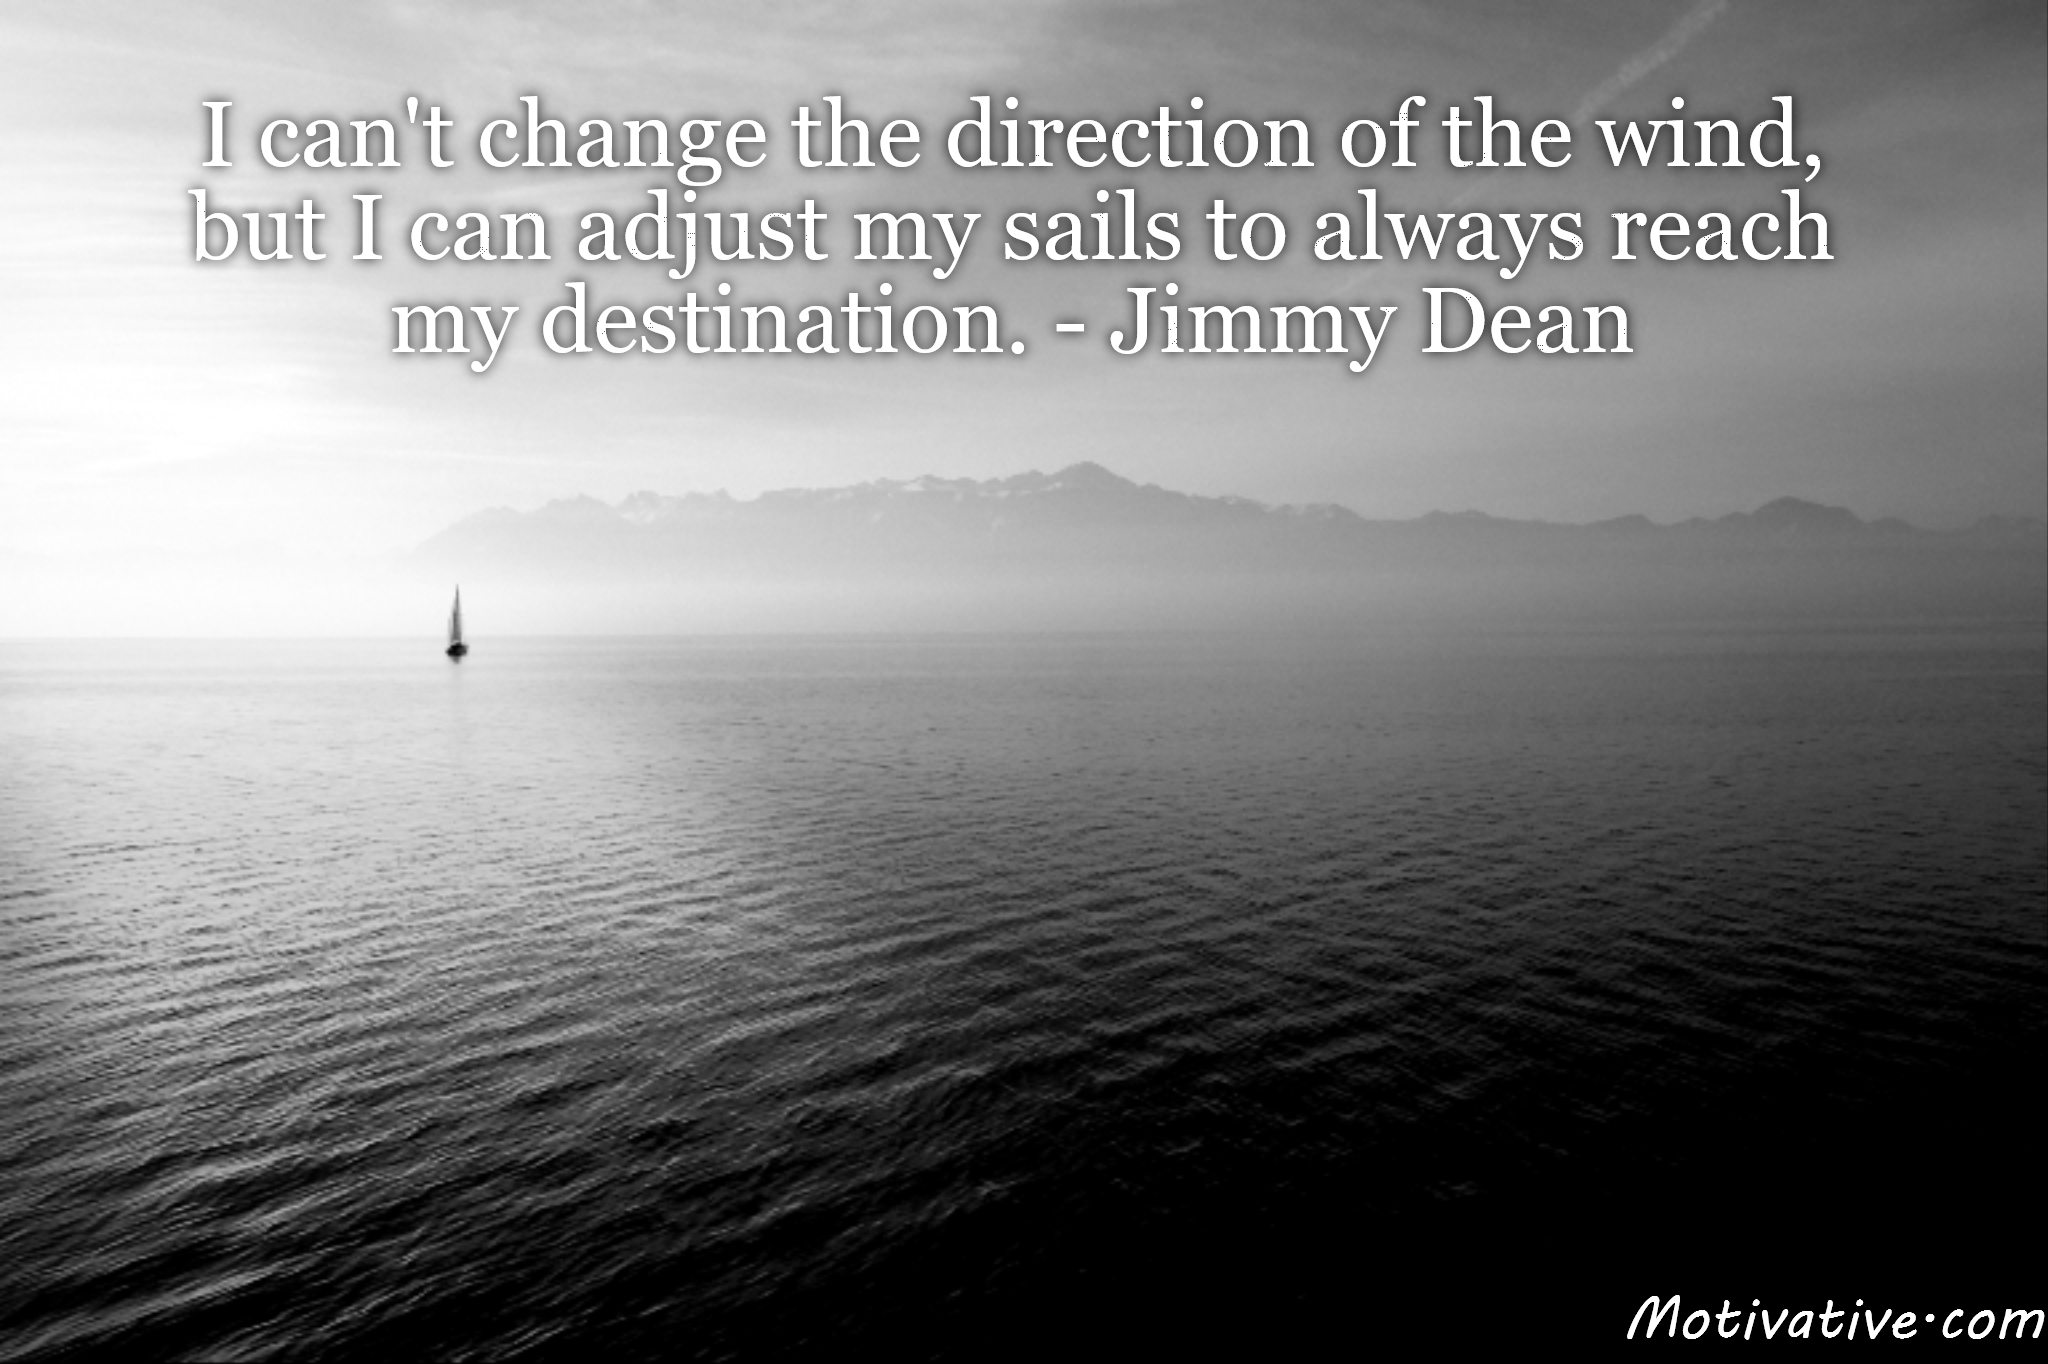 I can't change the direction of the wind, but I can adjust my sails to always reach my destination. – Jimmy Dean